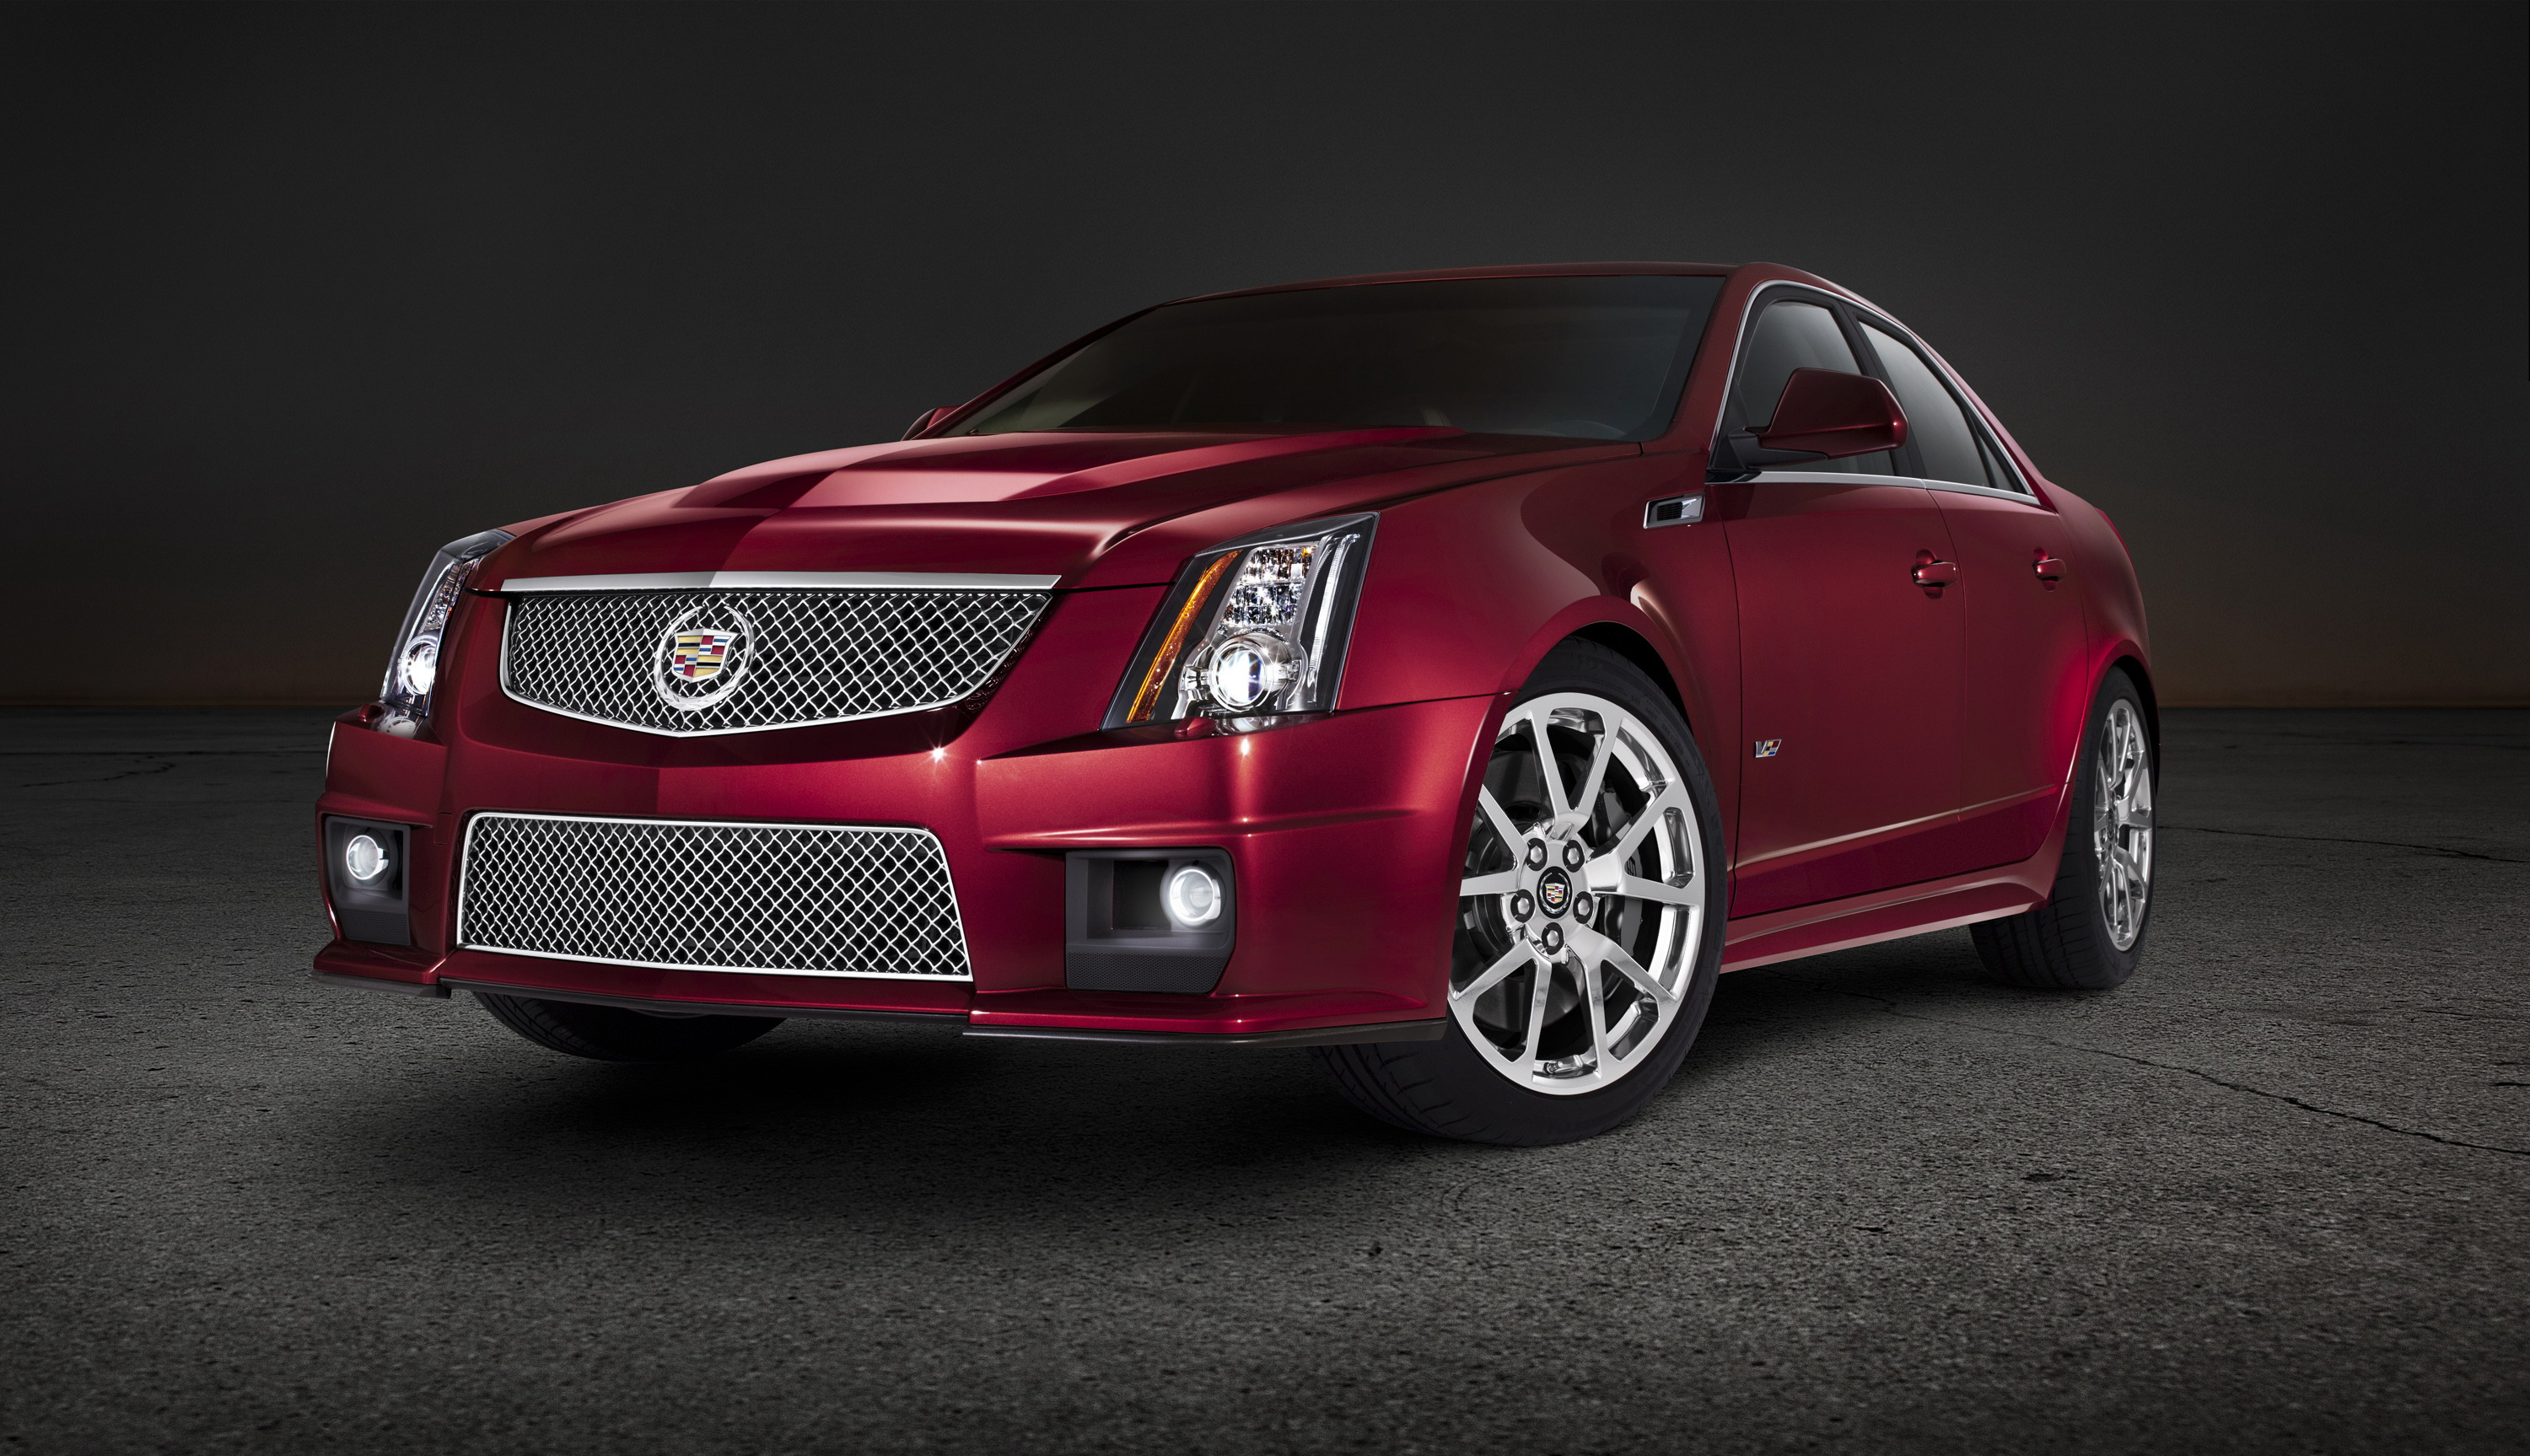 2014 cadillac cts v sedan gallery 545835 top speed. Black Bedroom Furniture Sets. Home Design Ideas